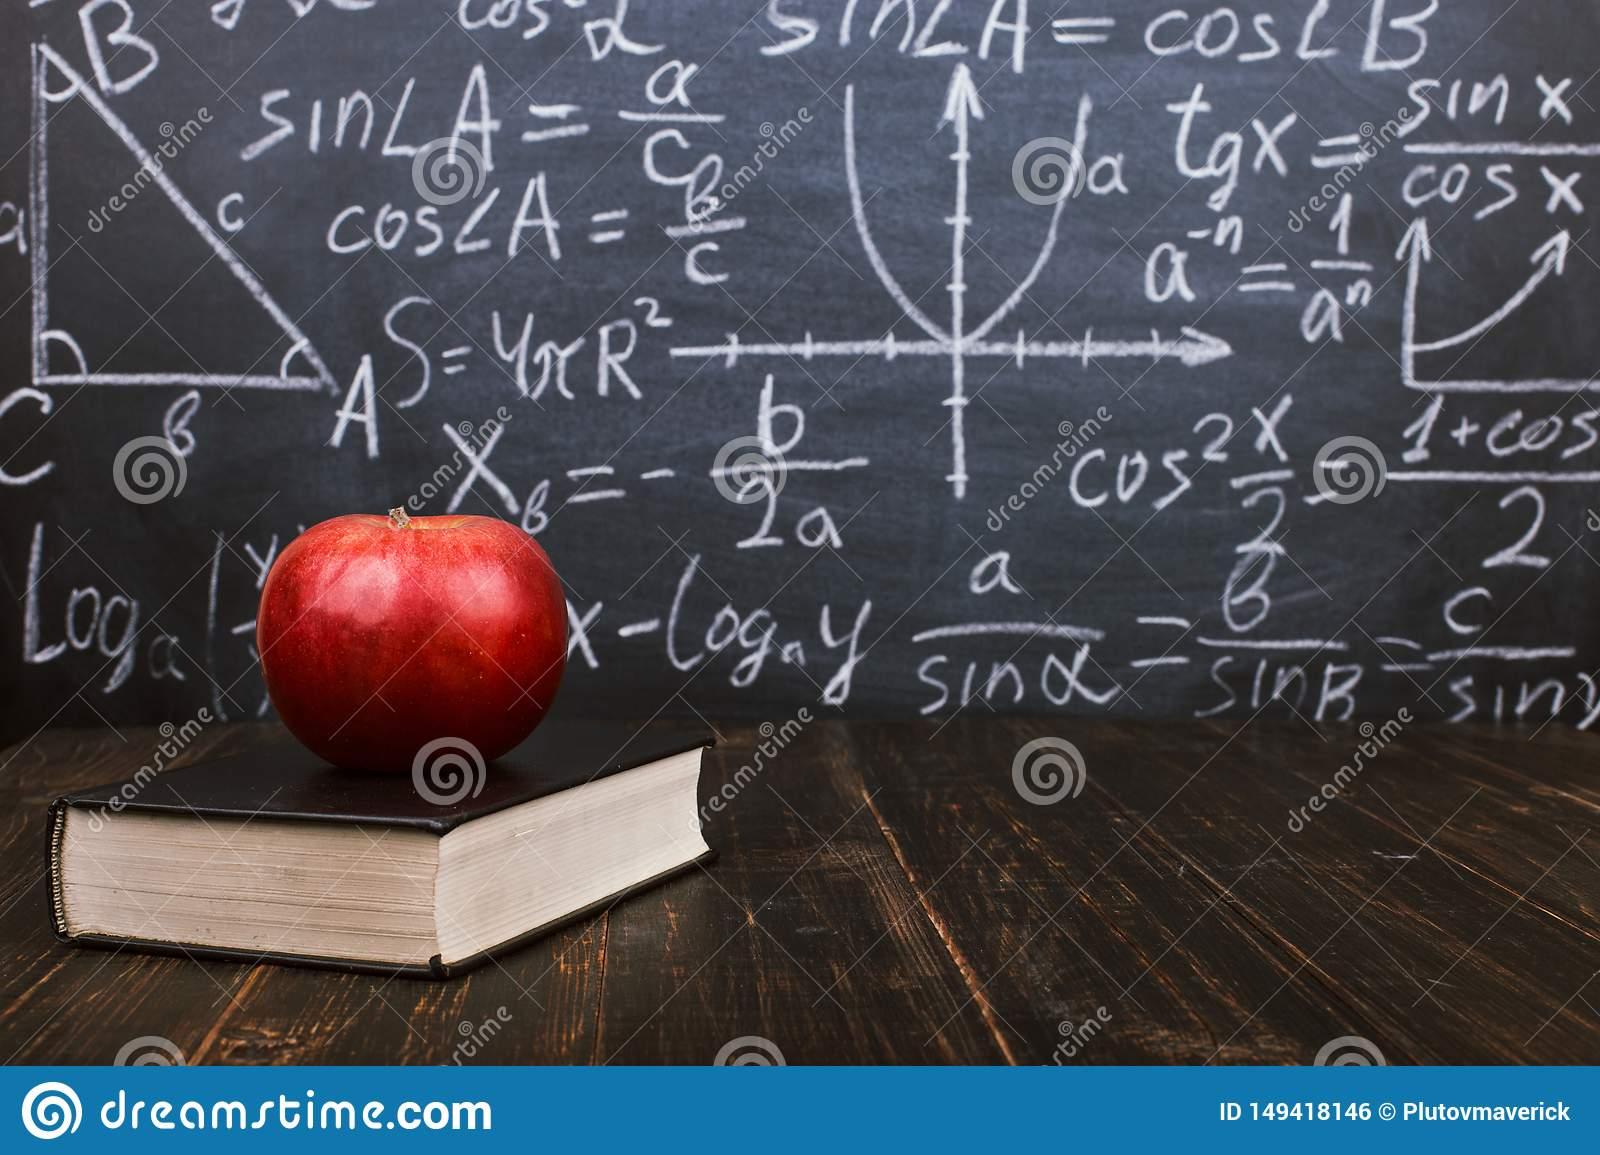 Books and an apple on a wooden table, against the background of a chalkboard with formulas. Teacher's day concept and back to